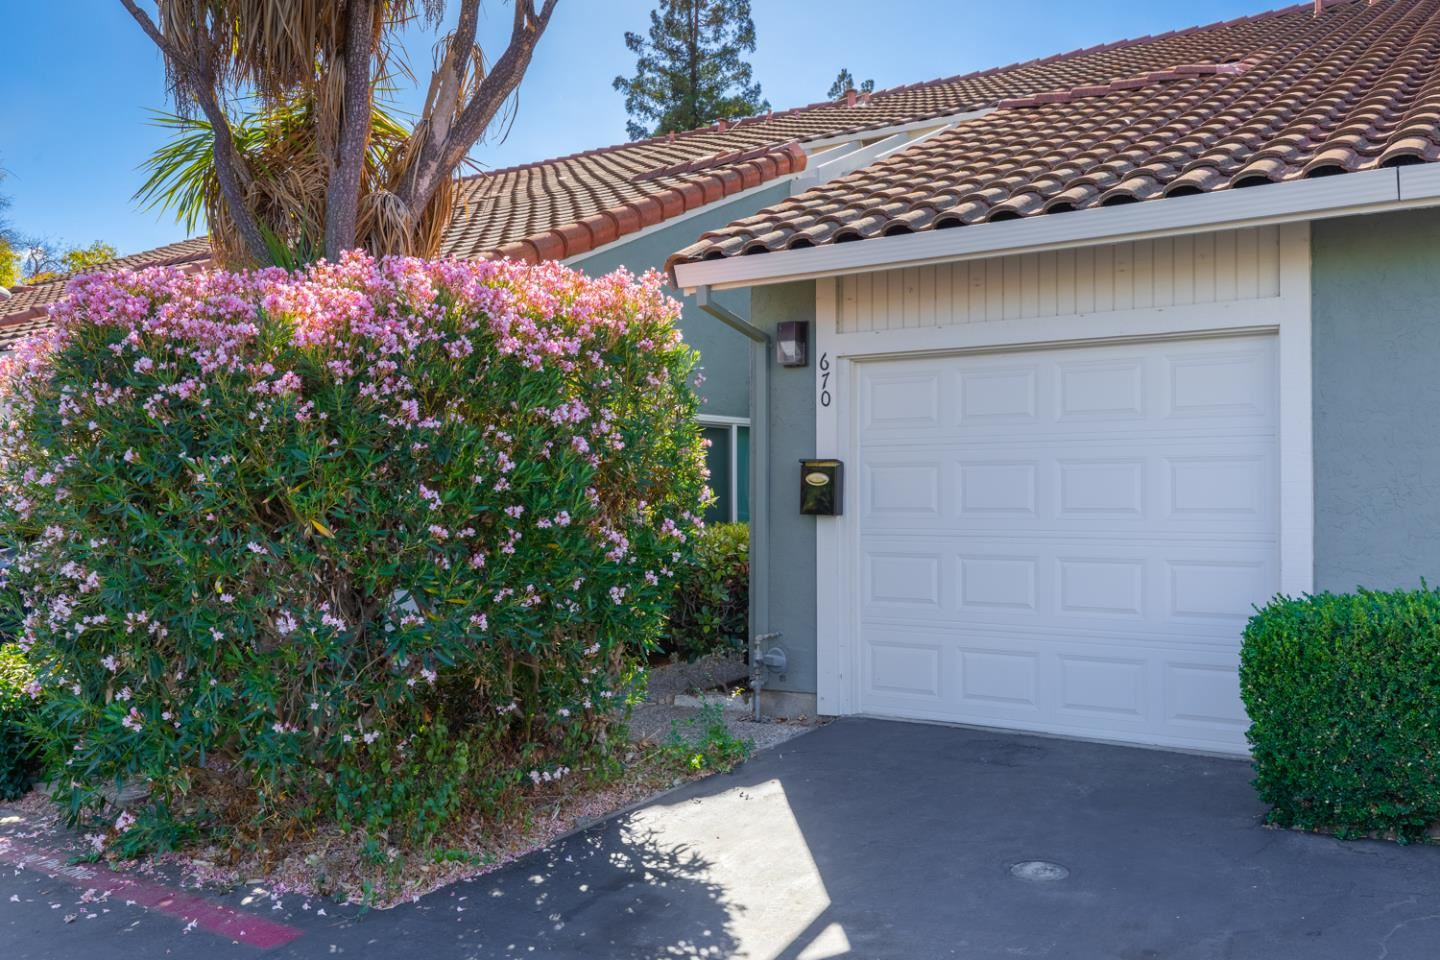 Photo for 670 West Sunnyoaks Avenue, CAMPBELL, CA 95008 (MLS # ML81866203)